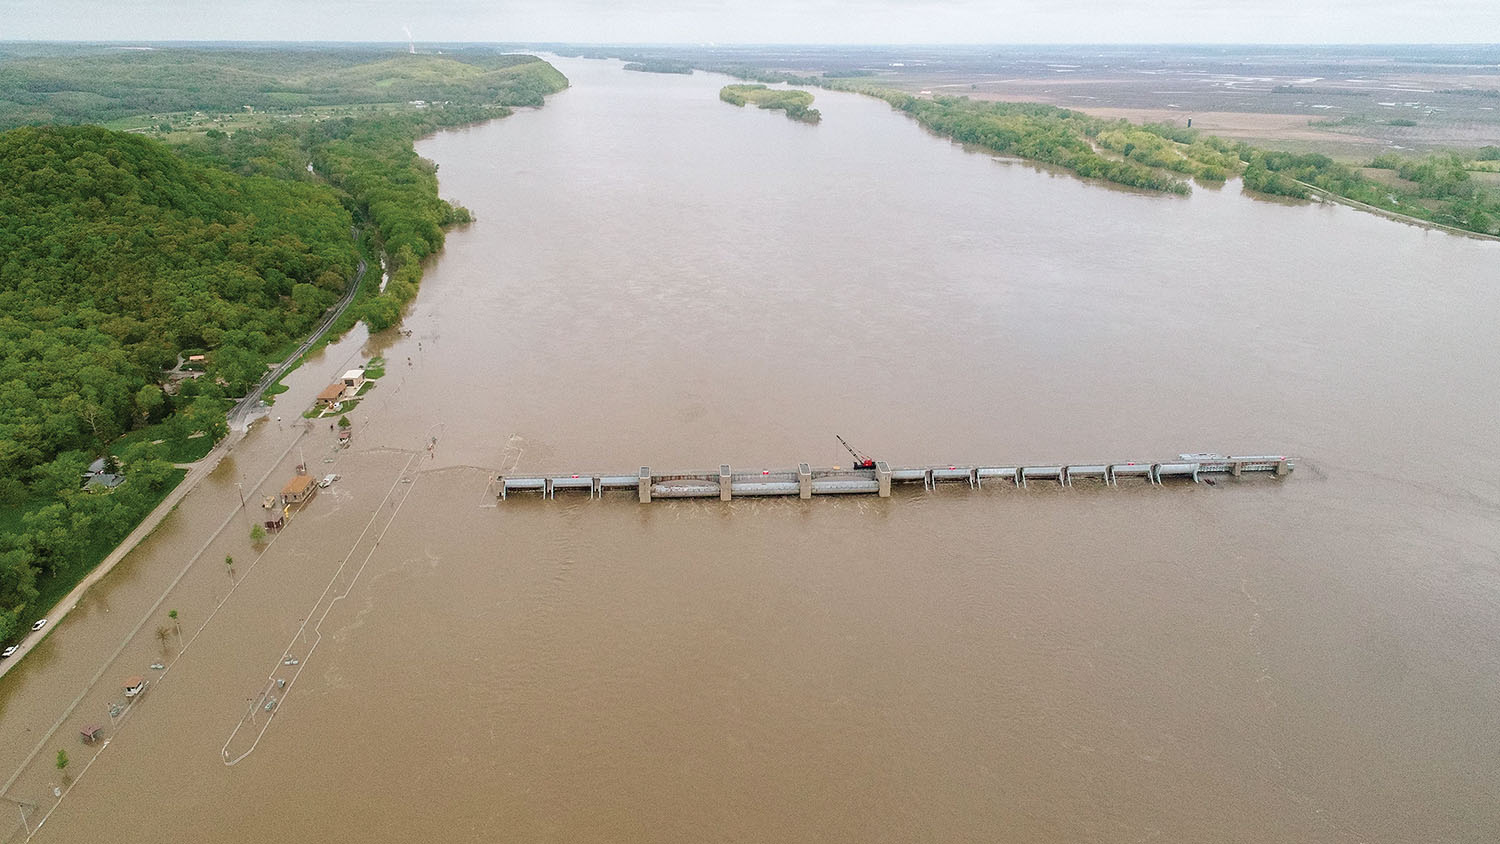 Floods Approach Records, Extend Lock Closures